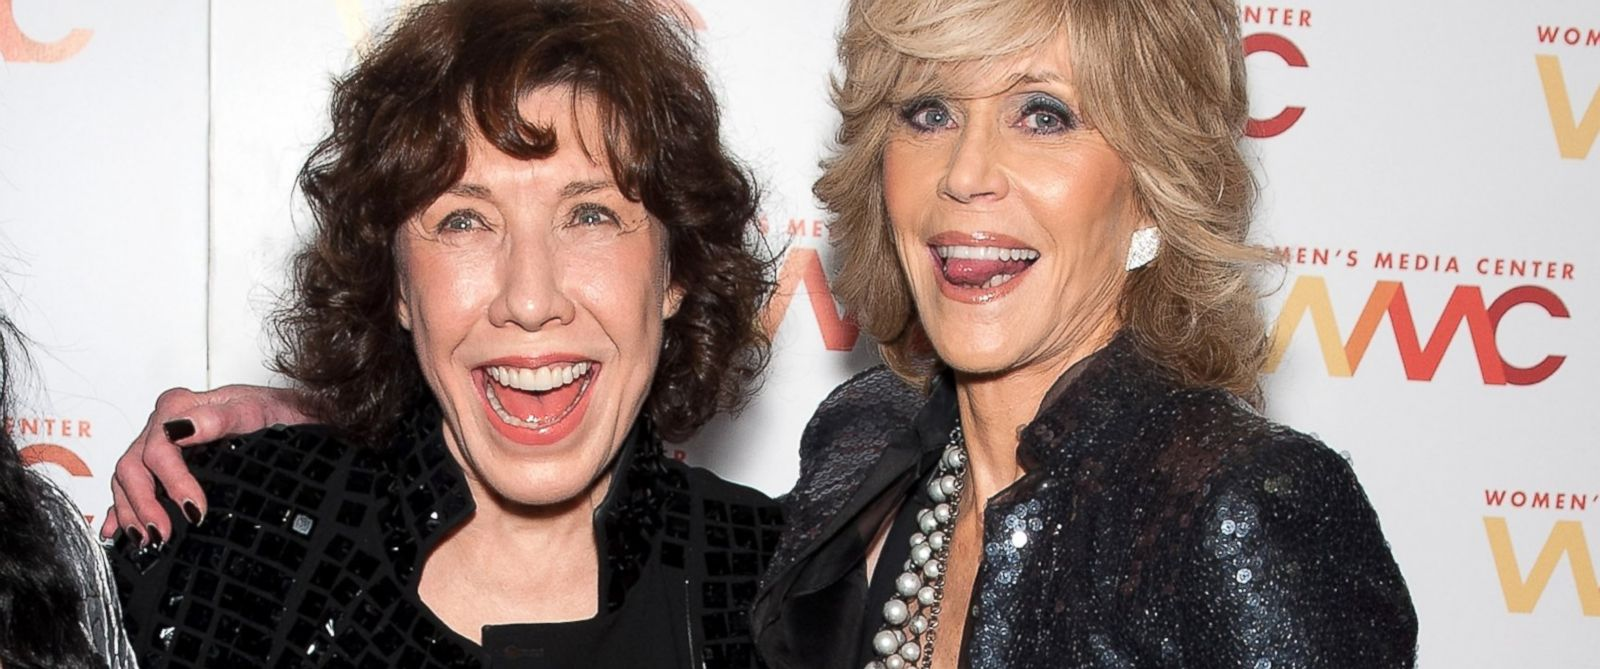 PHOTO: Lily Tomlin and Jane Fonda attend the 2013 Womens Media Awards at 583 Park Avenue, Oct. 8, 2013, in New York City.